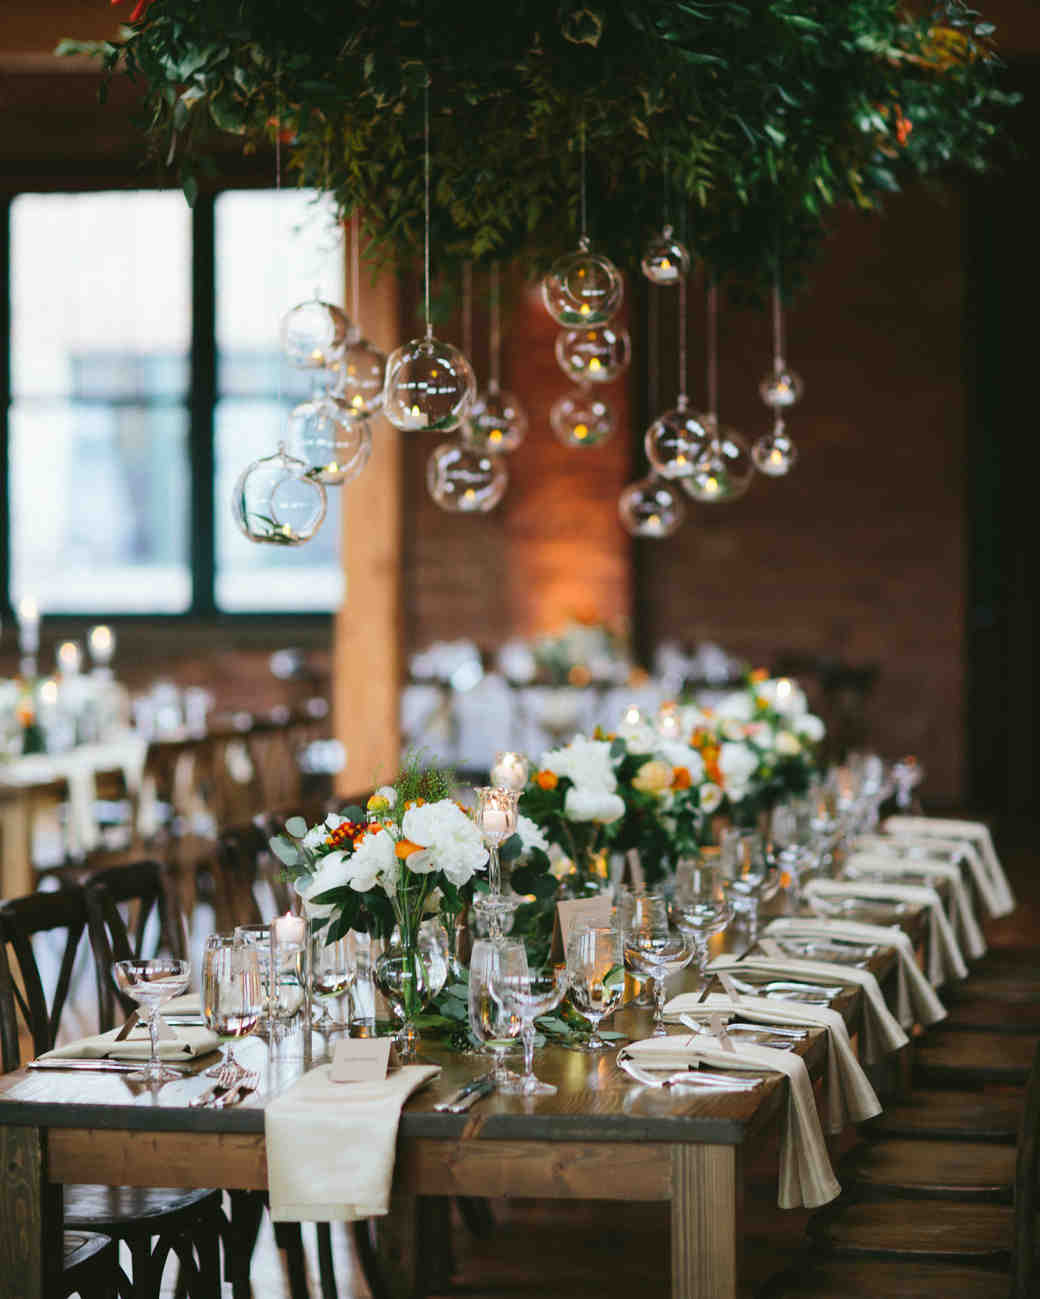 Wedding Table Decorations  28 Ideas for Sitting Pretty at Your Head Table